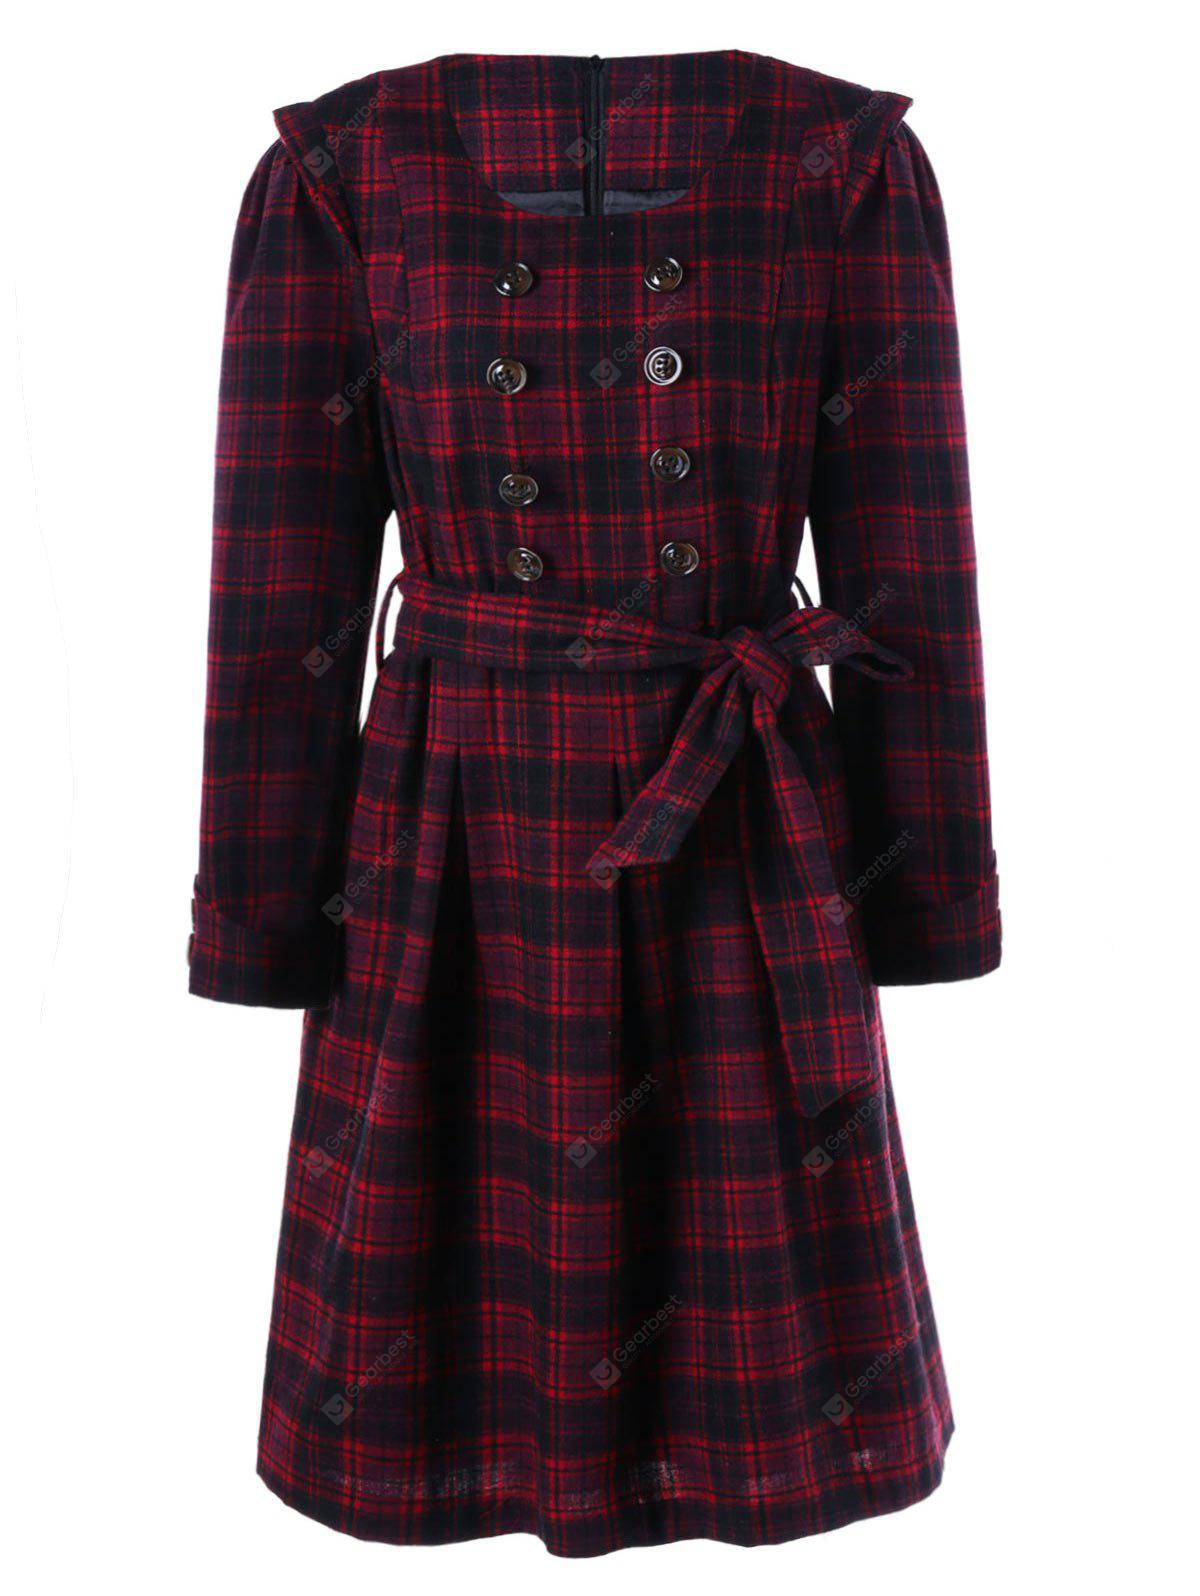 Long Sleeve Checked Dress with Buttons